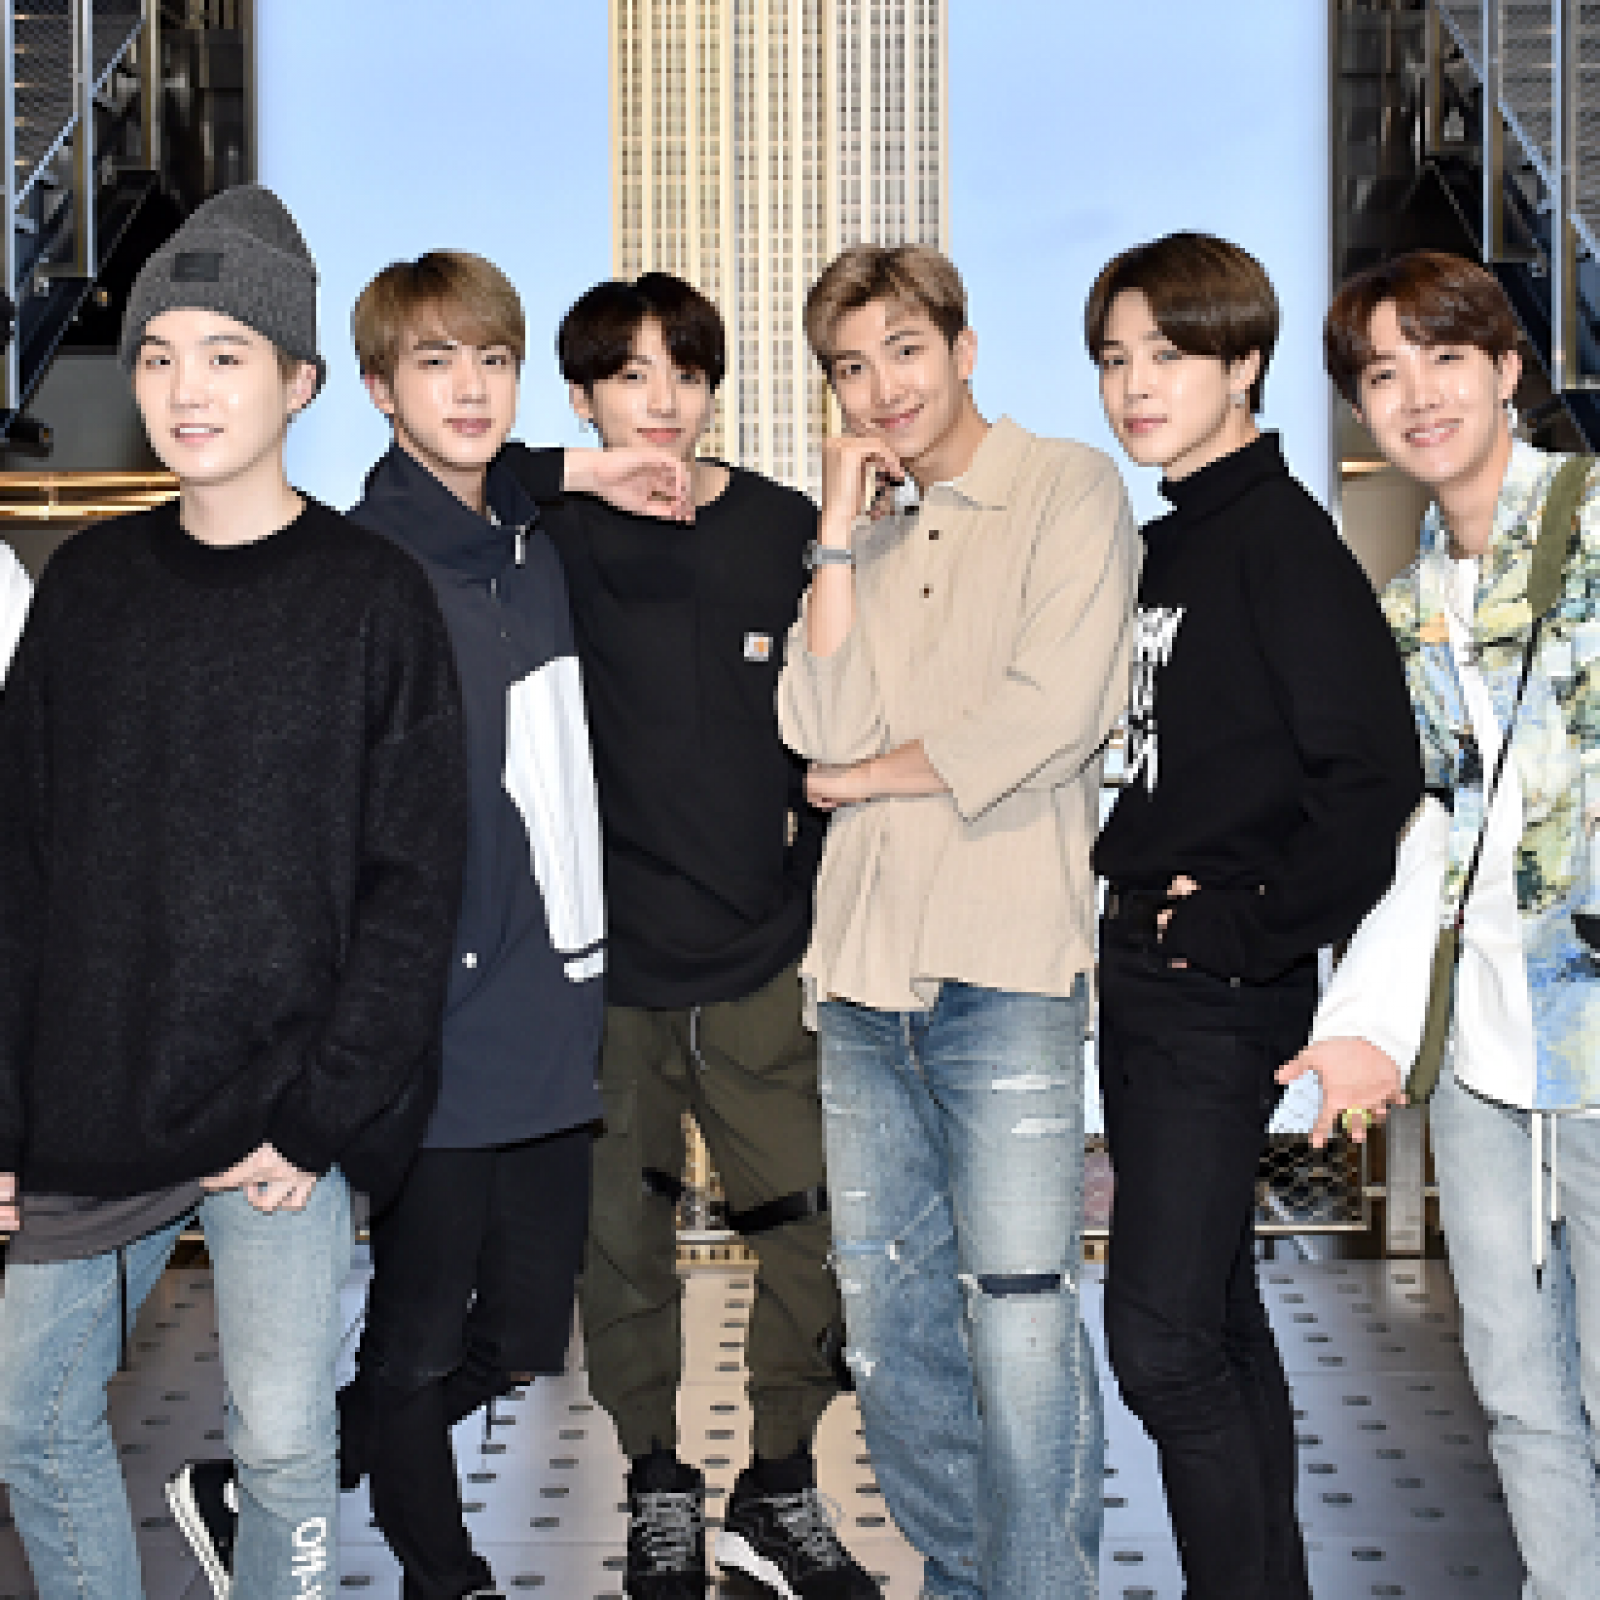 Bts Us Tour 2020.Bts Is Back Fans Freak Out After K Pop Band Announces New